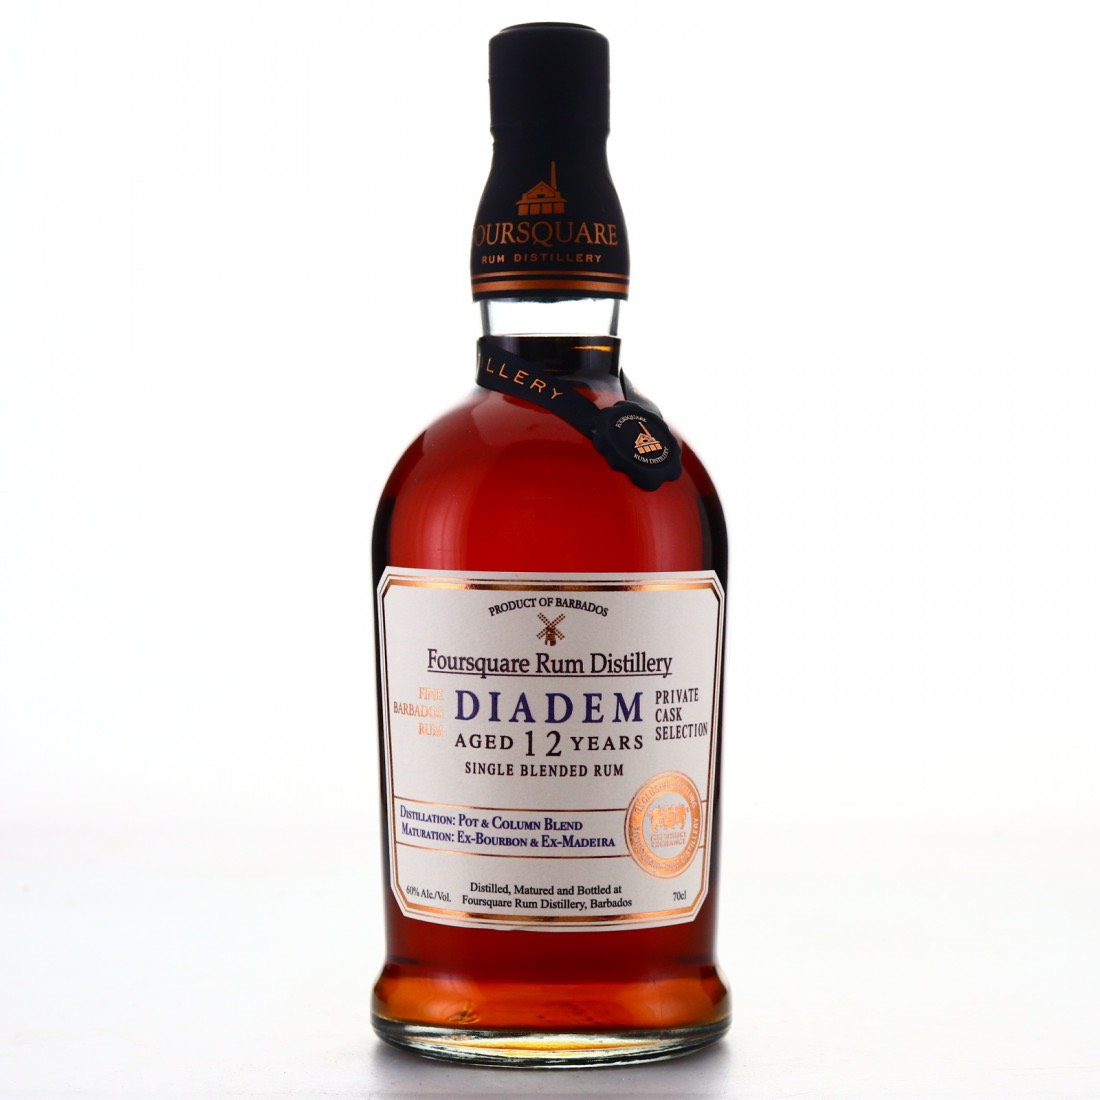 Bottle image of Private Cask Selection Diadem (The Whisky Exchange)